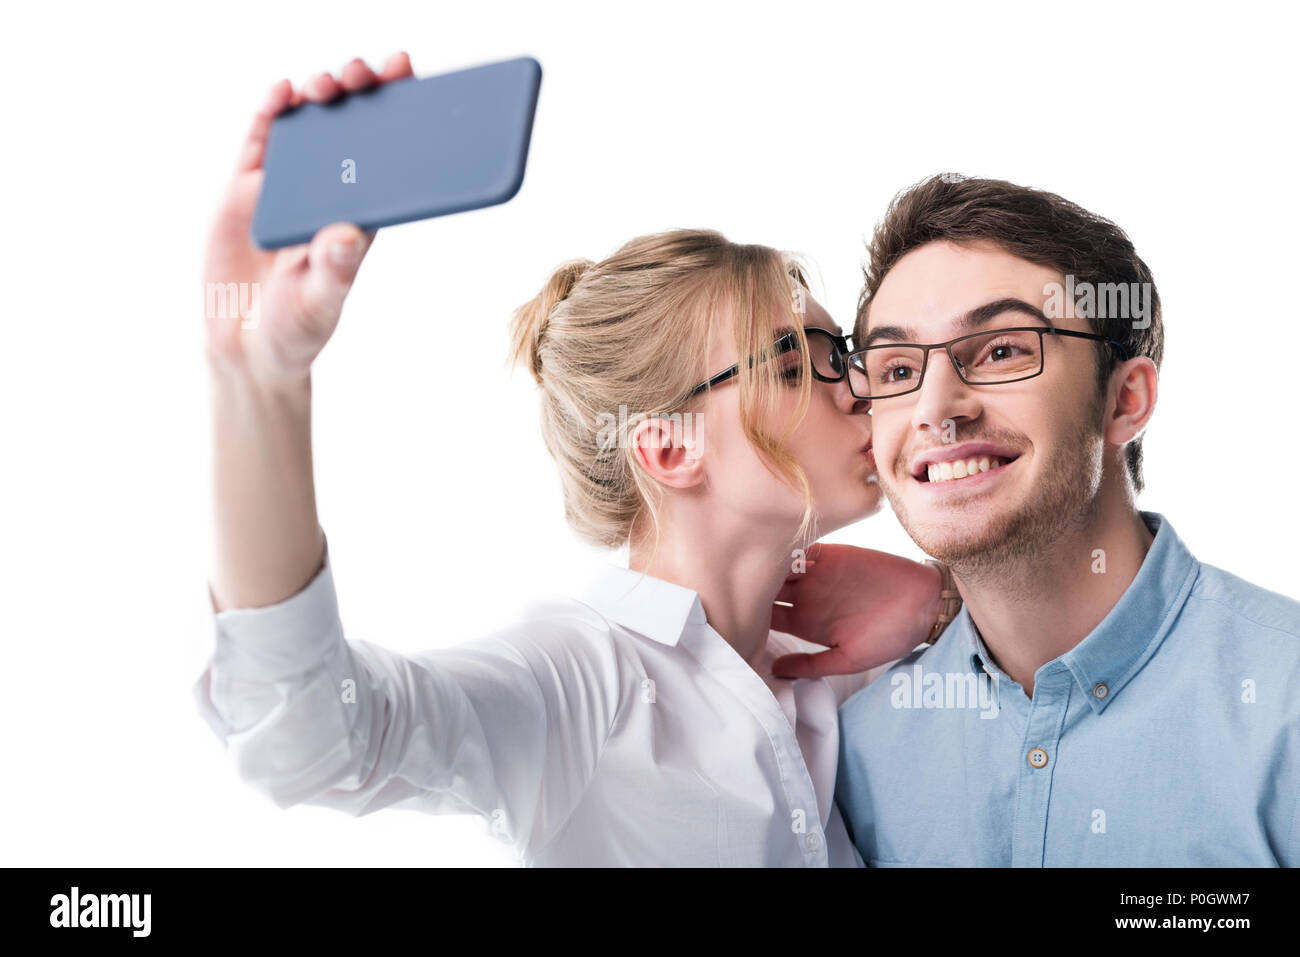 businesspeople in formal wear kissing and taking selfie on smartphone, isolated on white - Stock Image